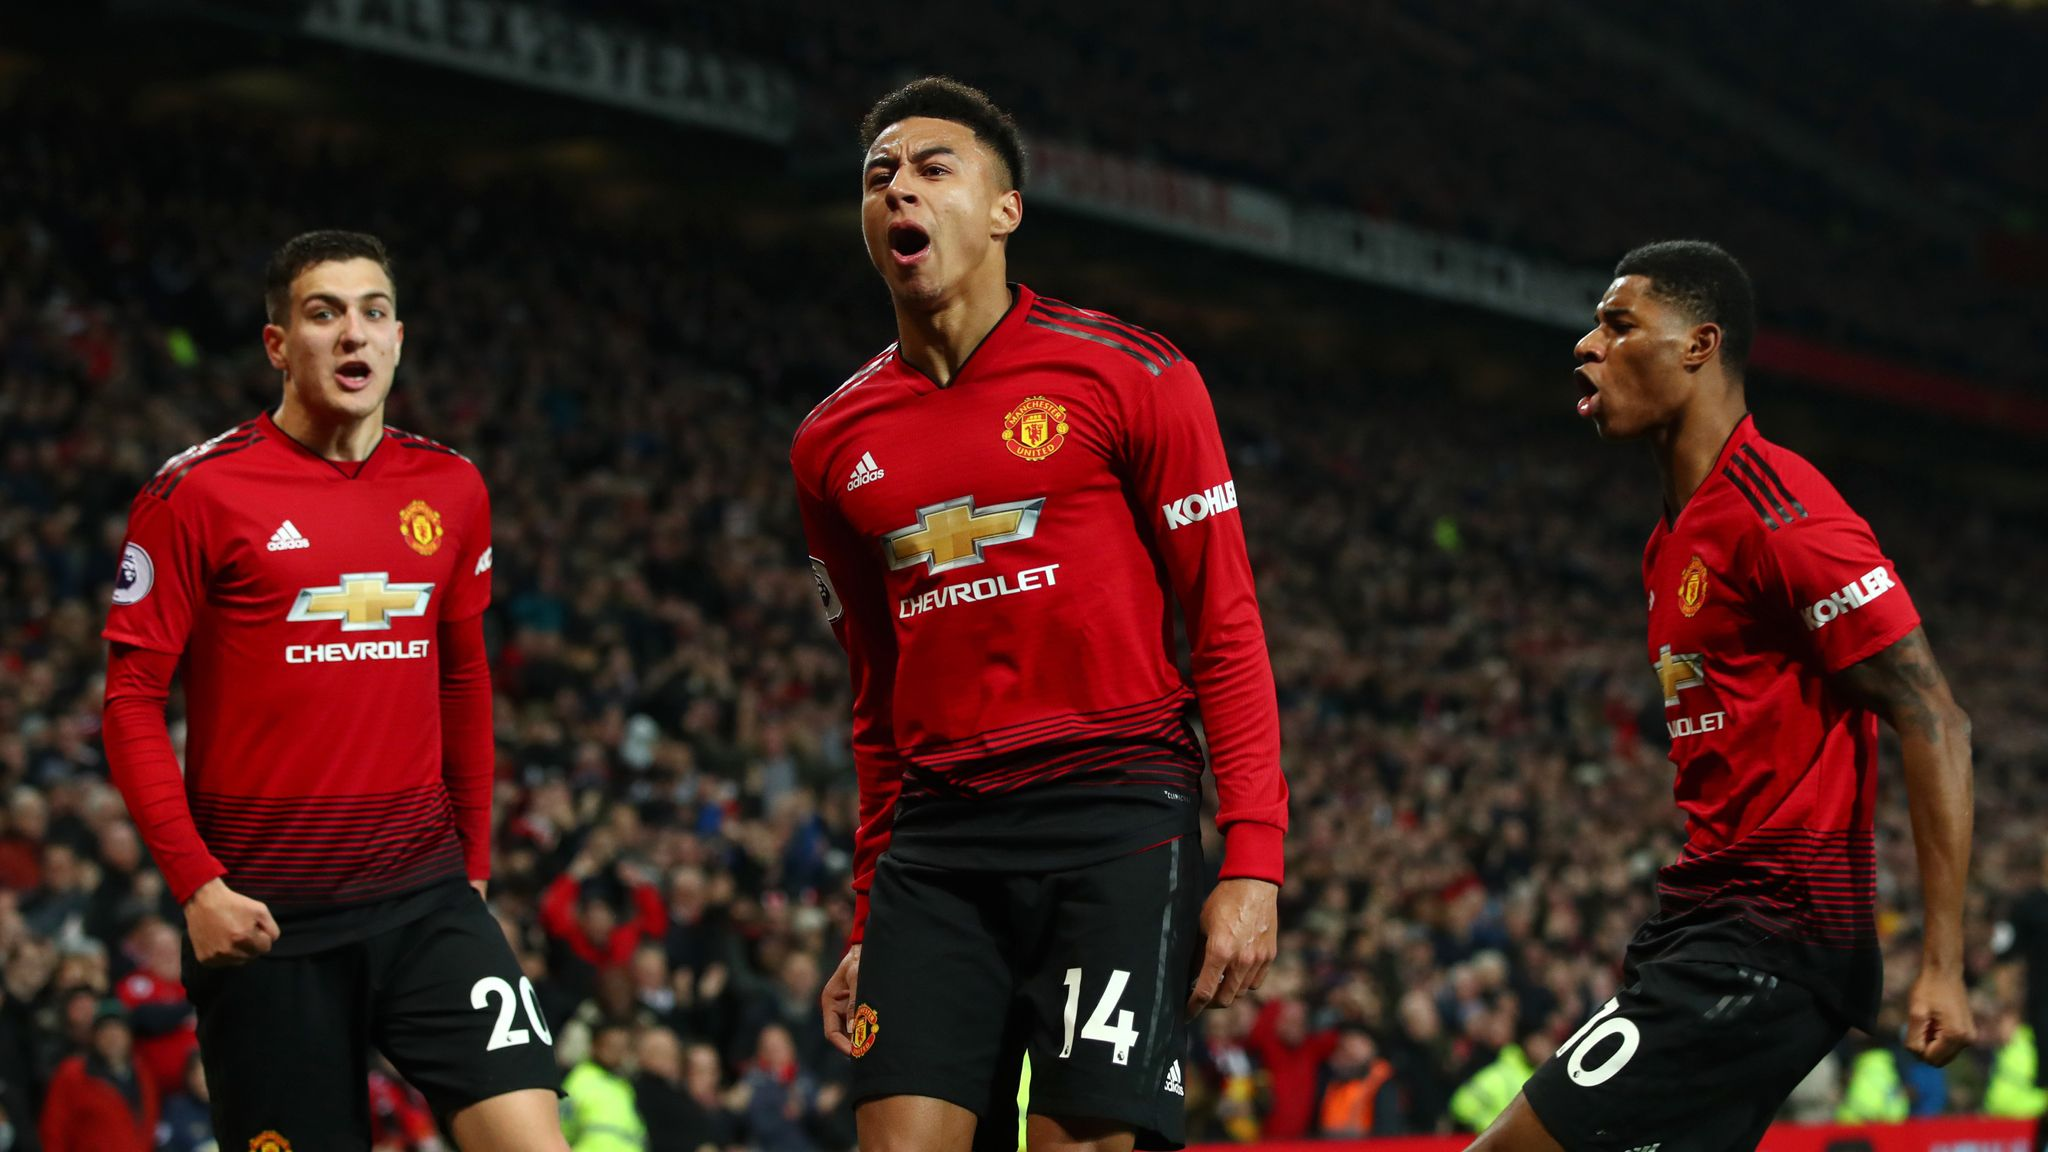 Manchester United Lead The Way With Academy Minutes But Man